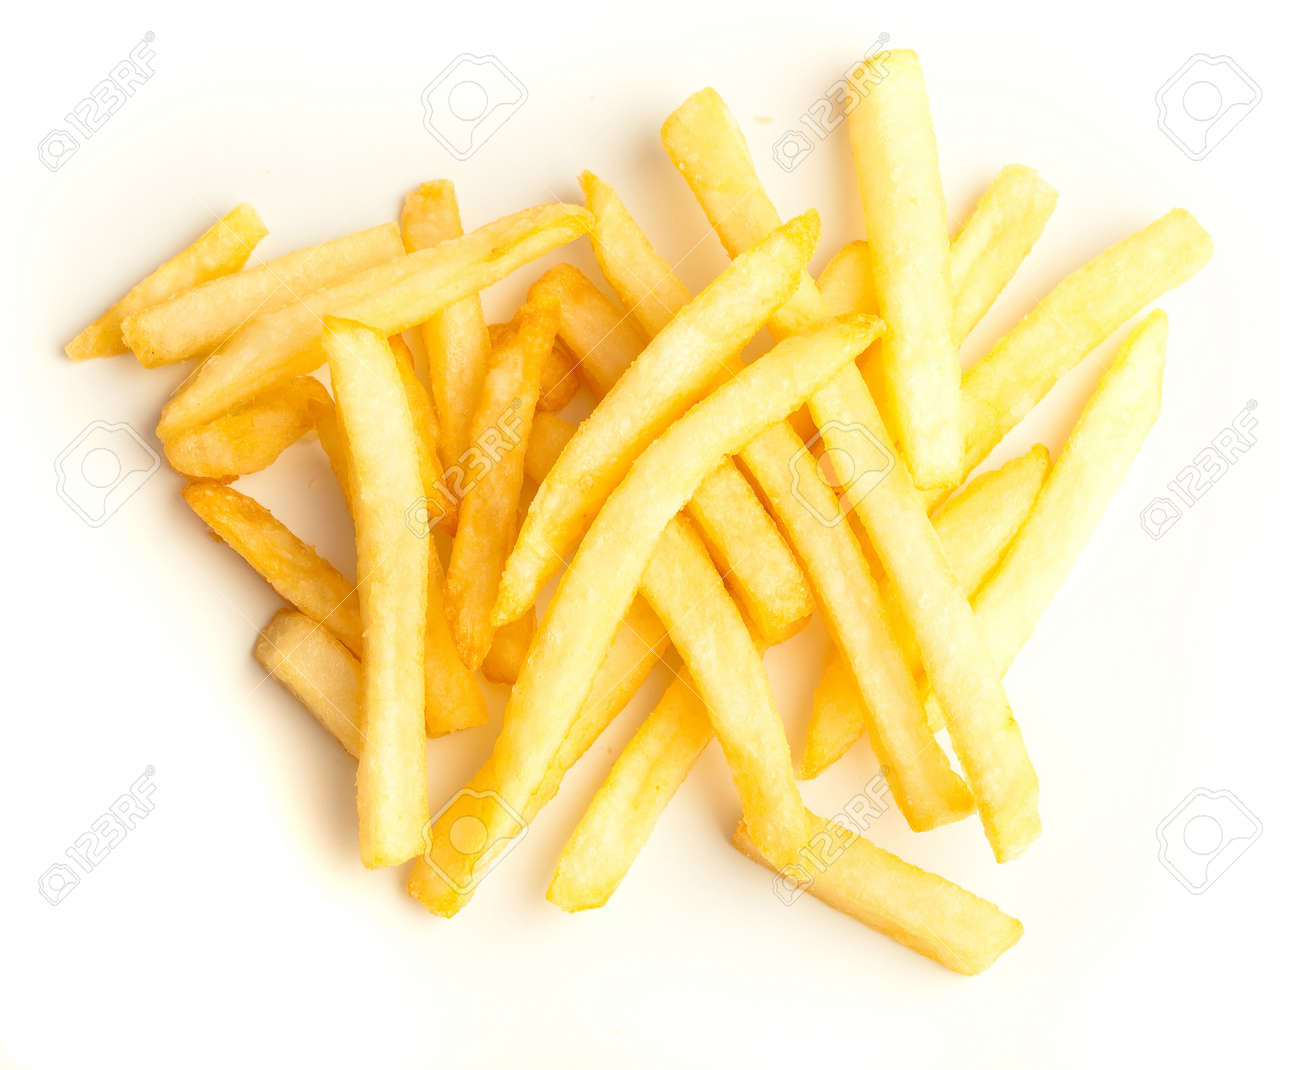 fried potatoes isolated on a white background Stock Photo - 8193938